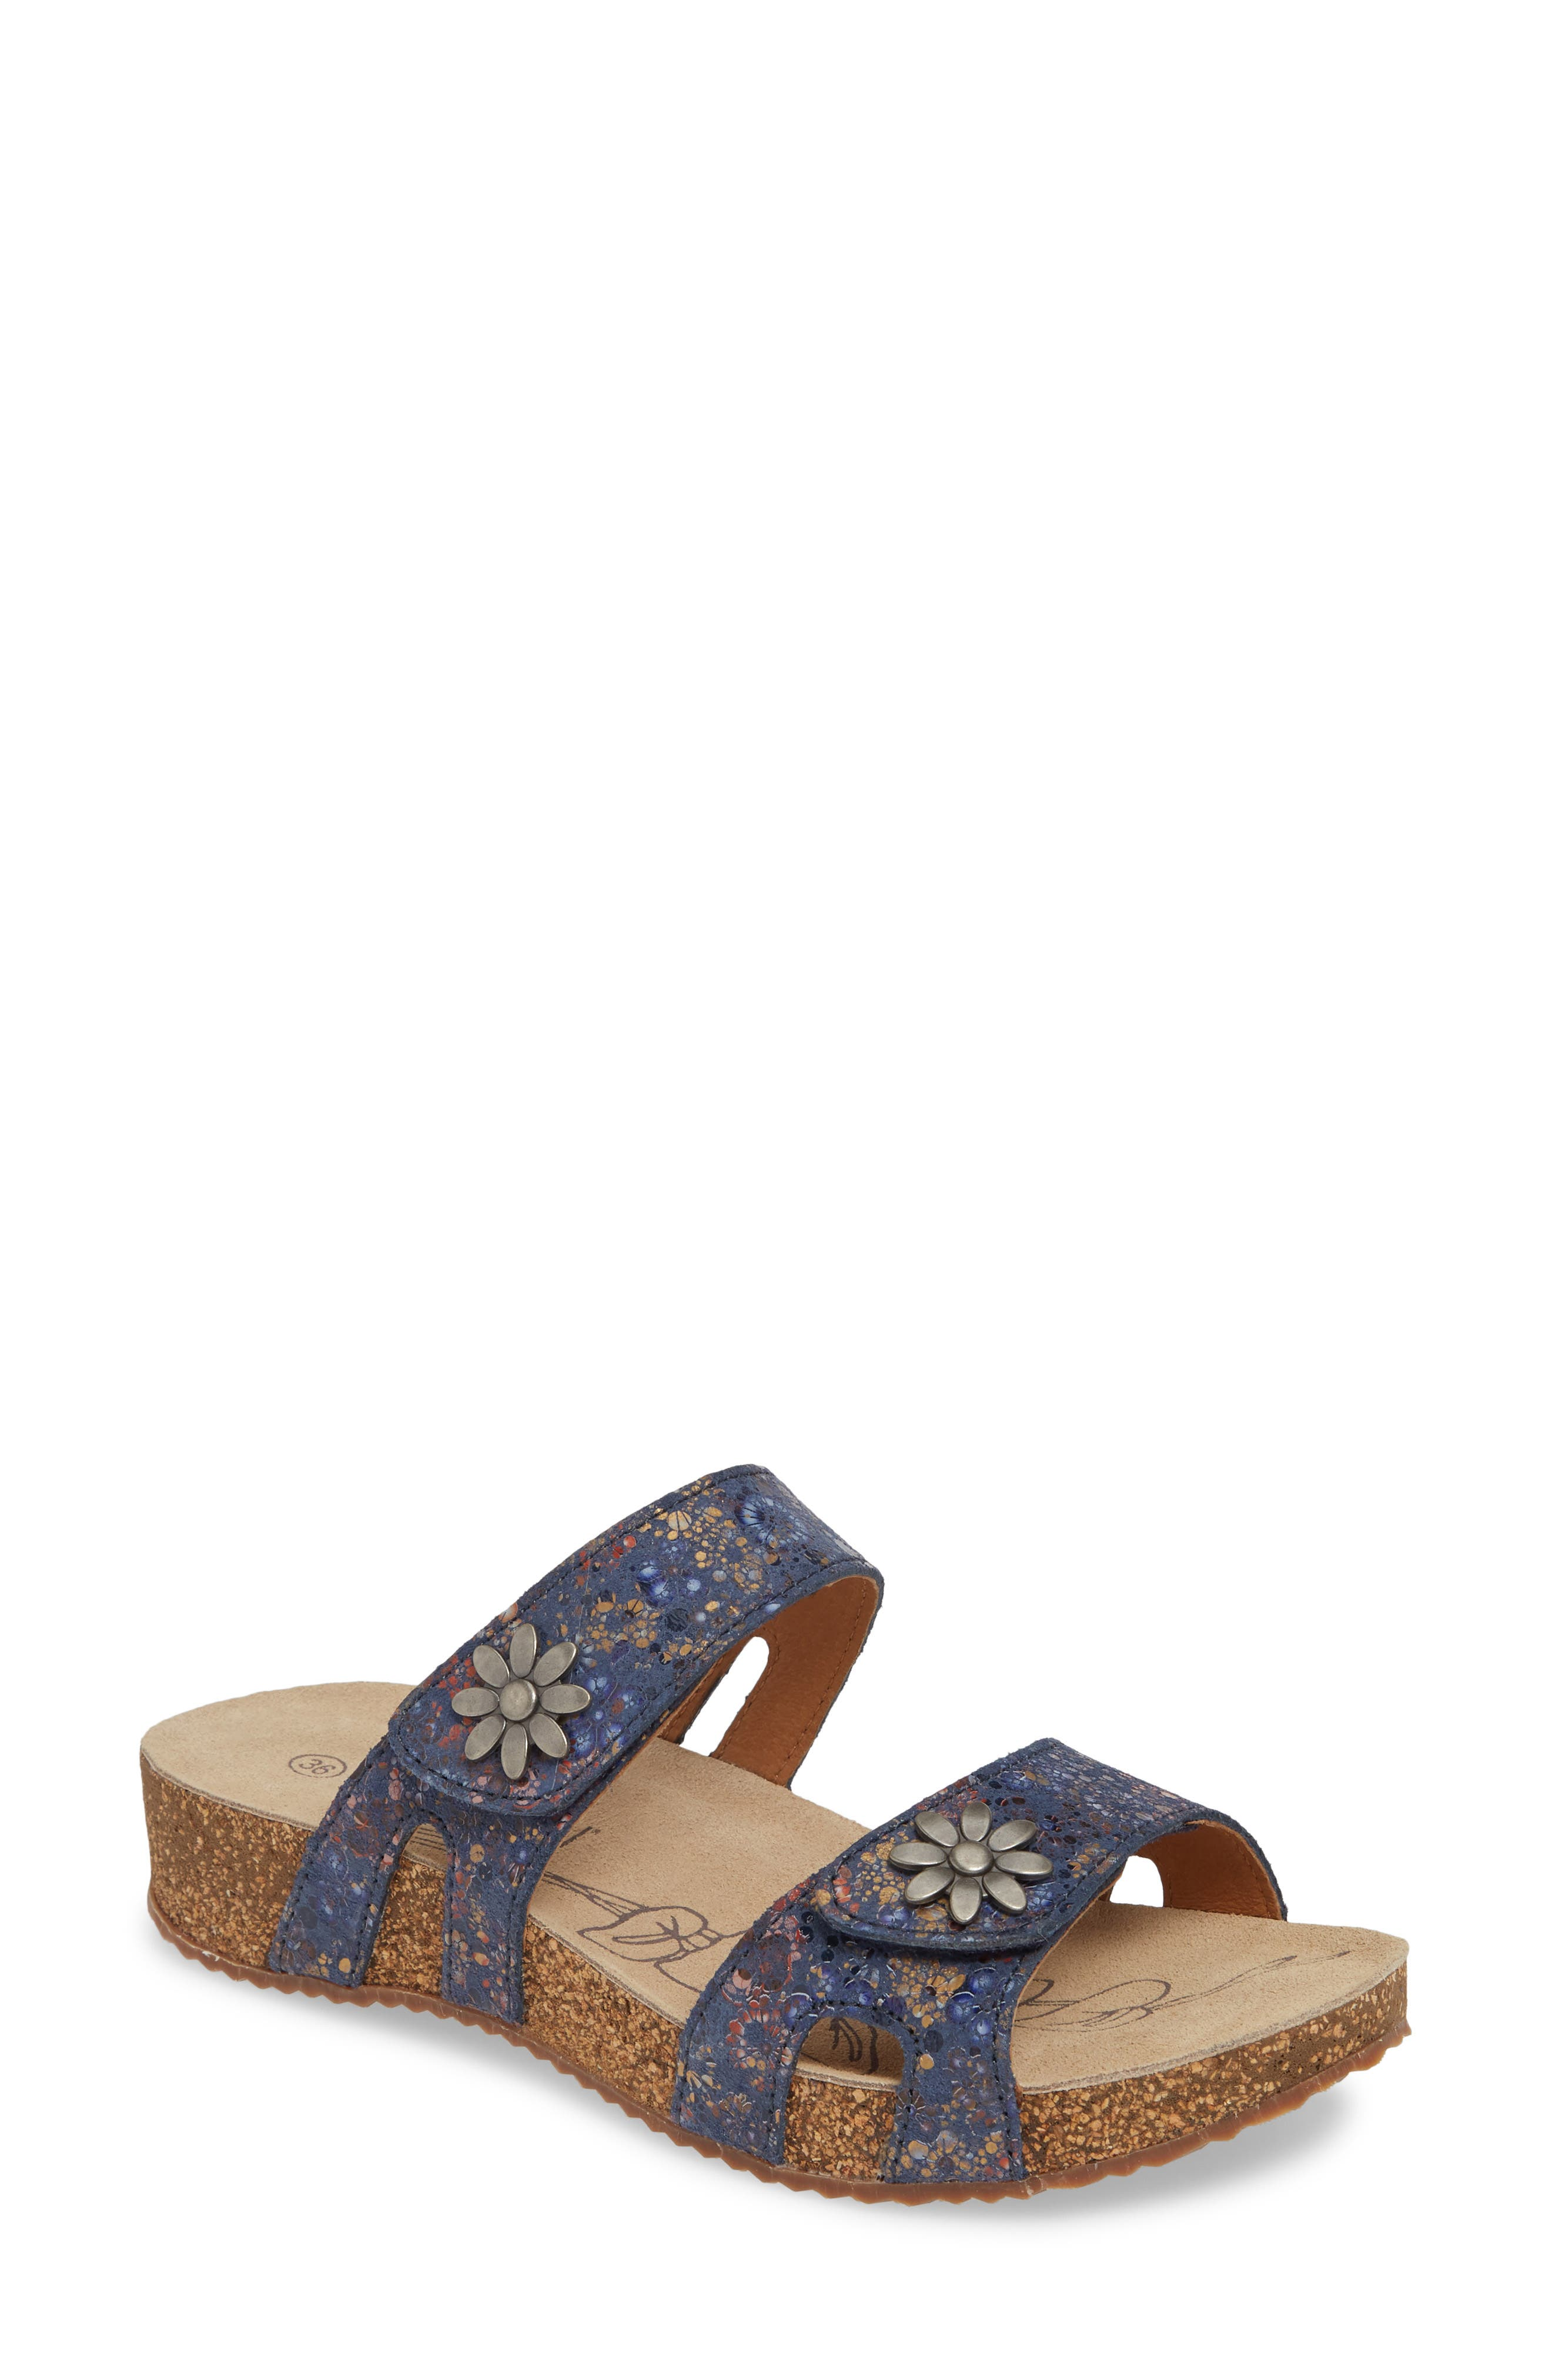 125559e2845 Josef Seibel All Women | Nordstrom